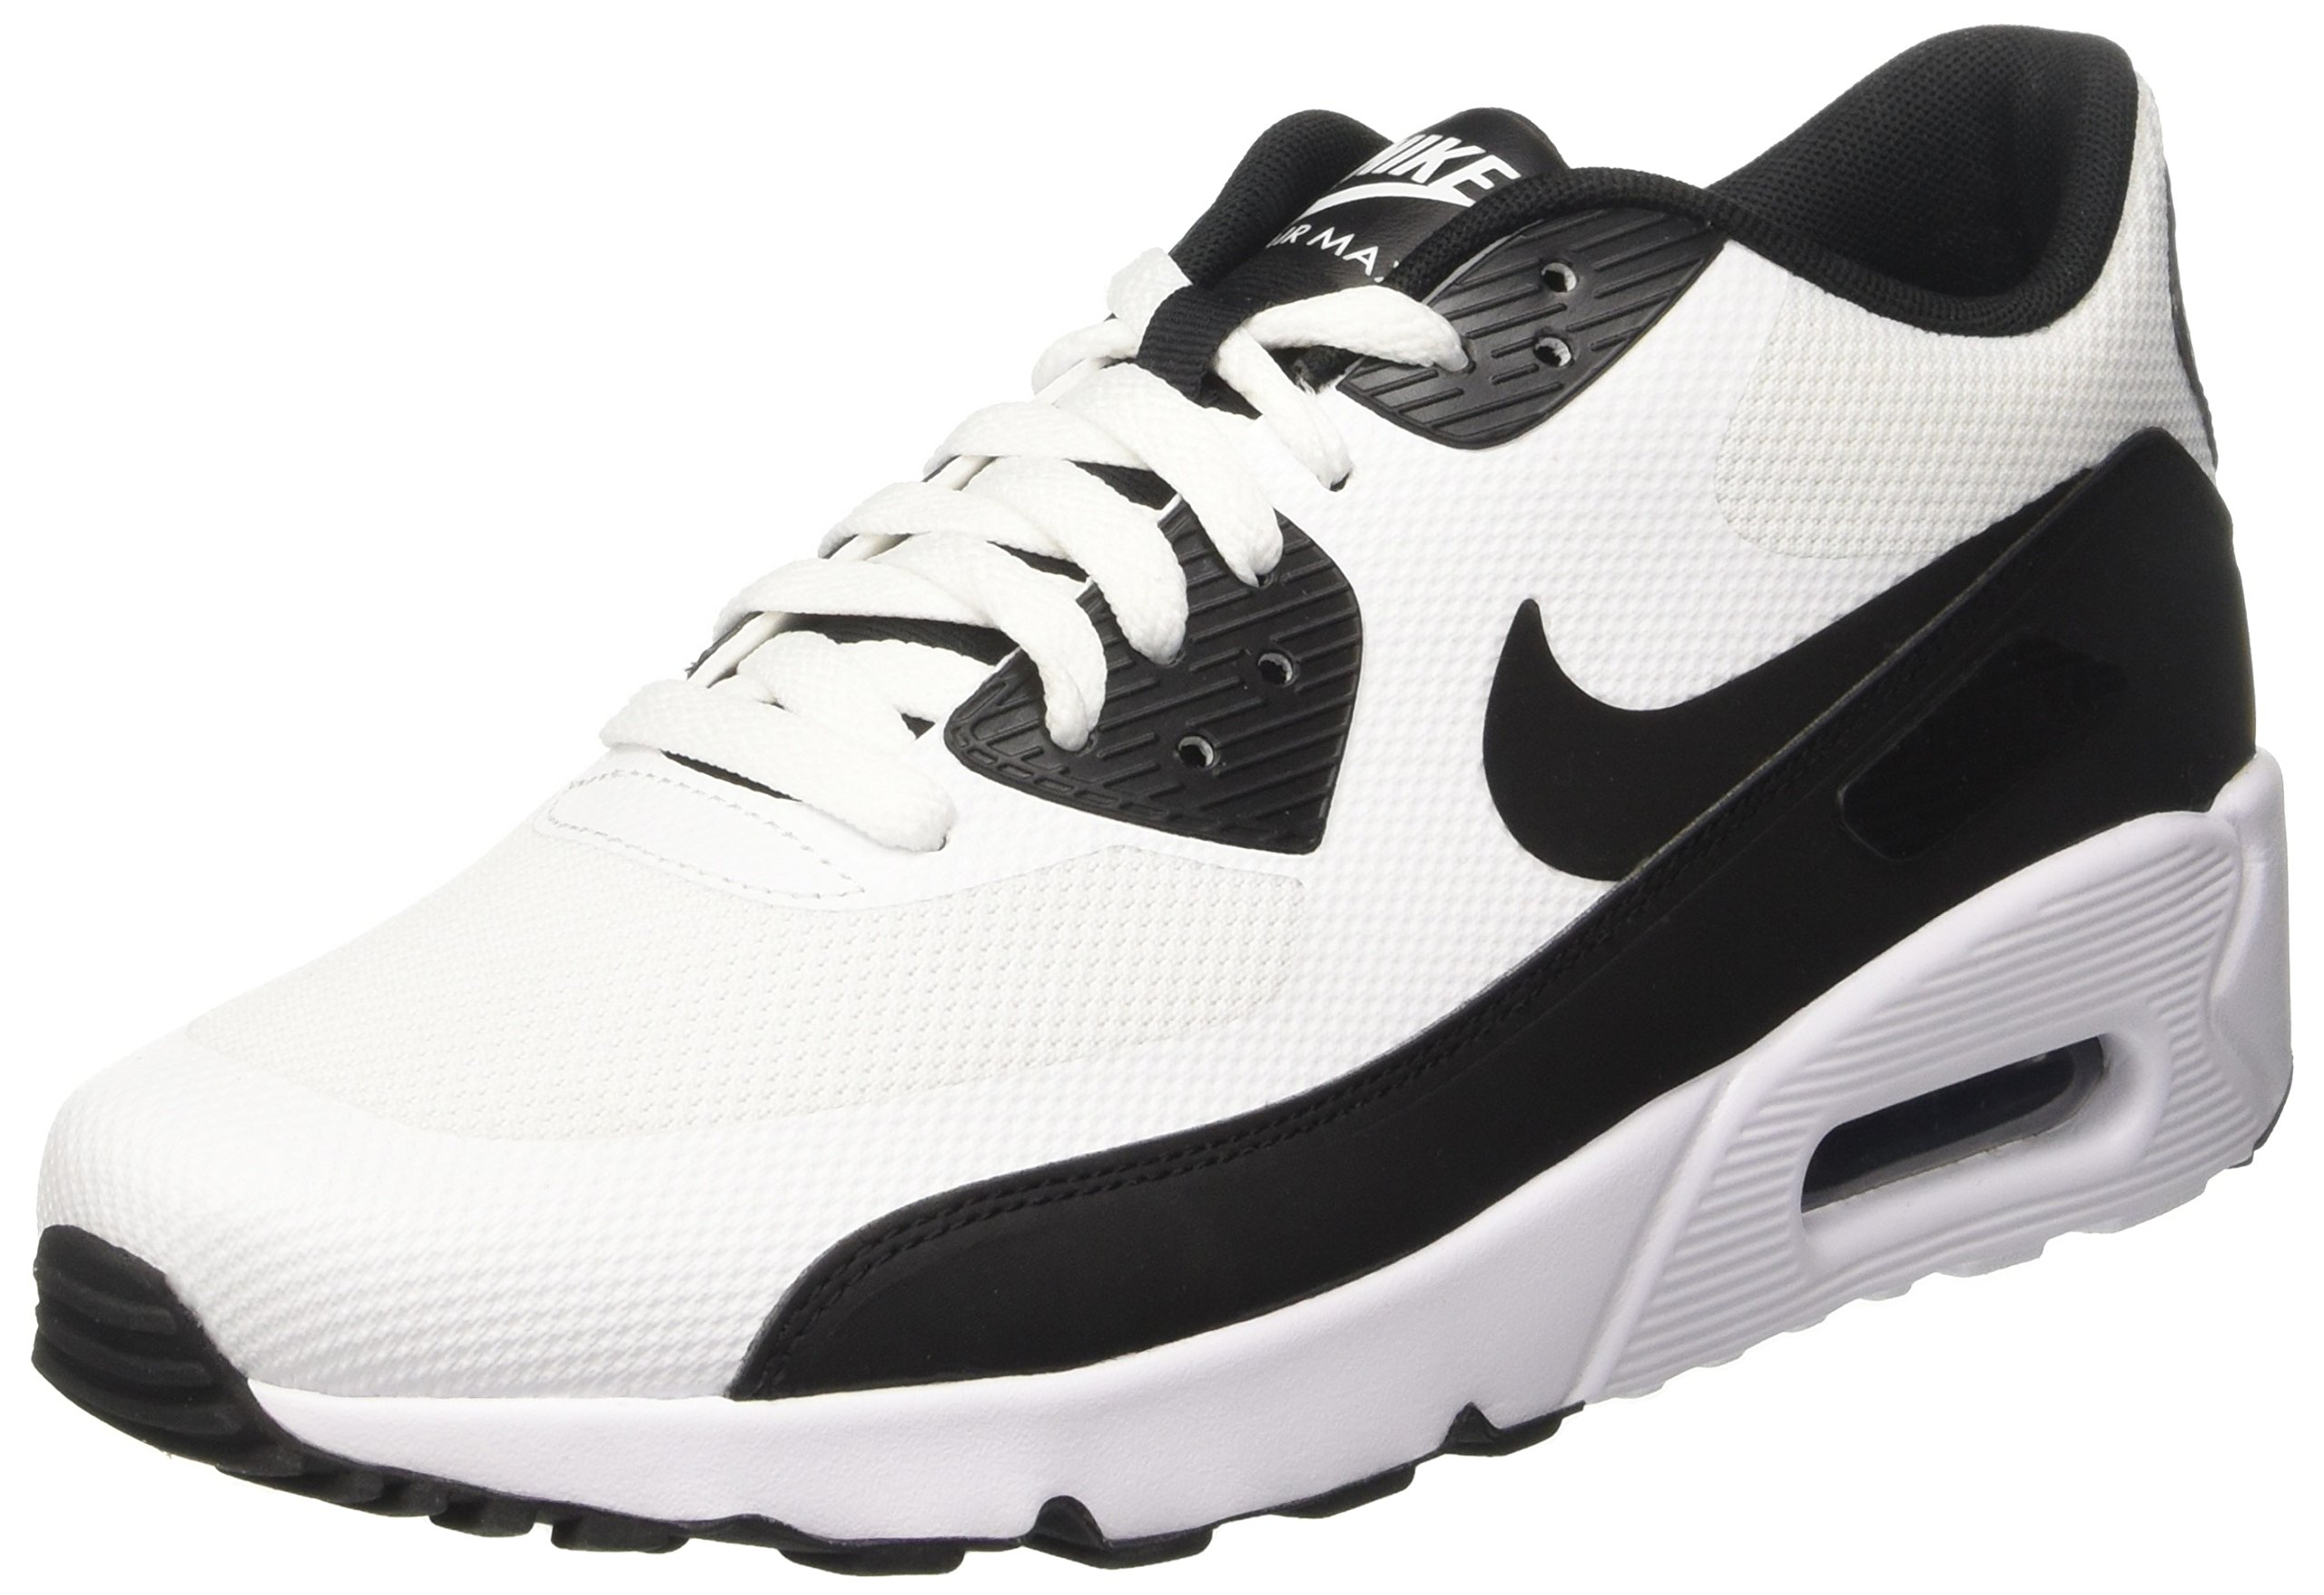 huge discount 8b0cb d7f04 Galleon - Nike AIR MAX 90 ULTRA 2.0 ESSENTIAL Mens Fashion-sneakers  875695-100 11 - WHITE BLACK-WHITE